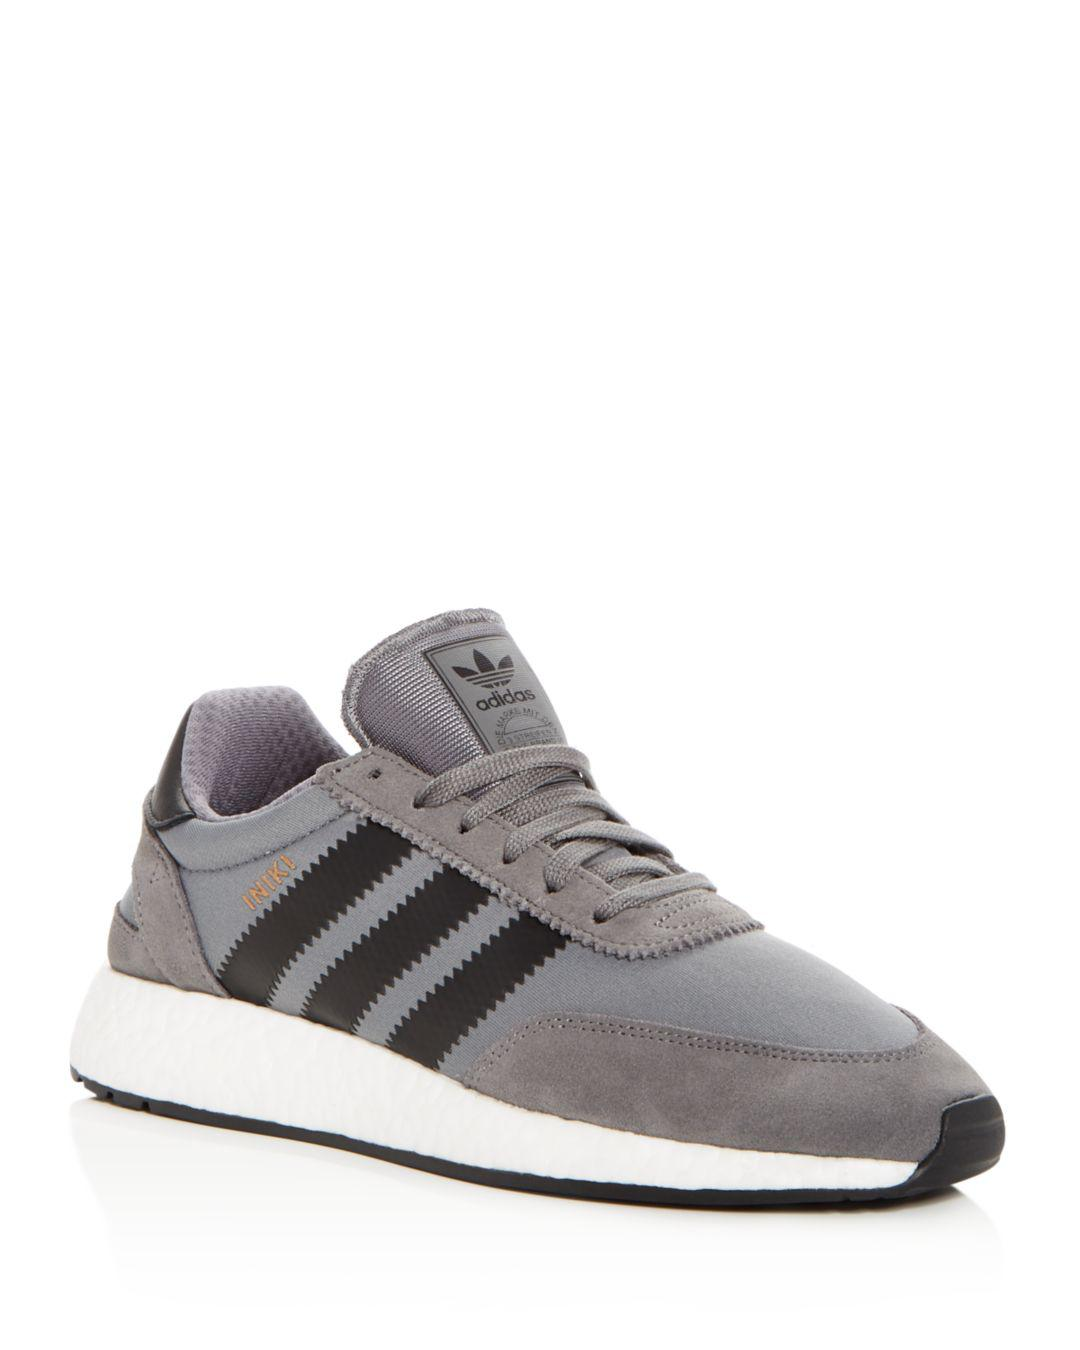 9d347f764a7 Lyst - Adidas Men s Iniki Lace Up Sneakers in Gray for Men - Save ...